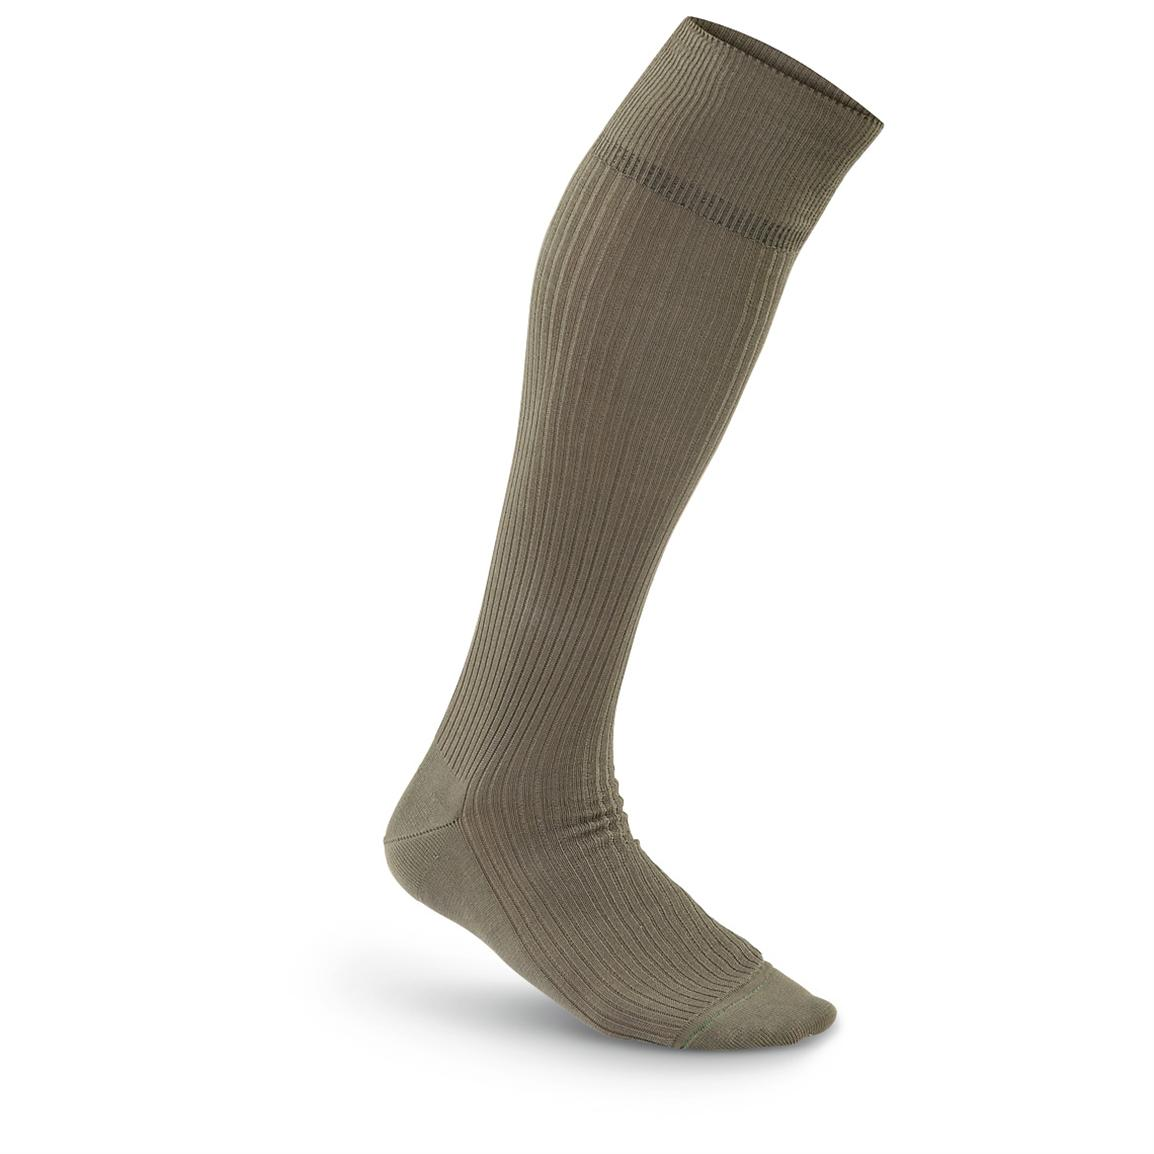 French Military Surplus Boot Socks